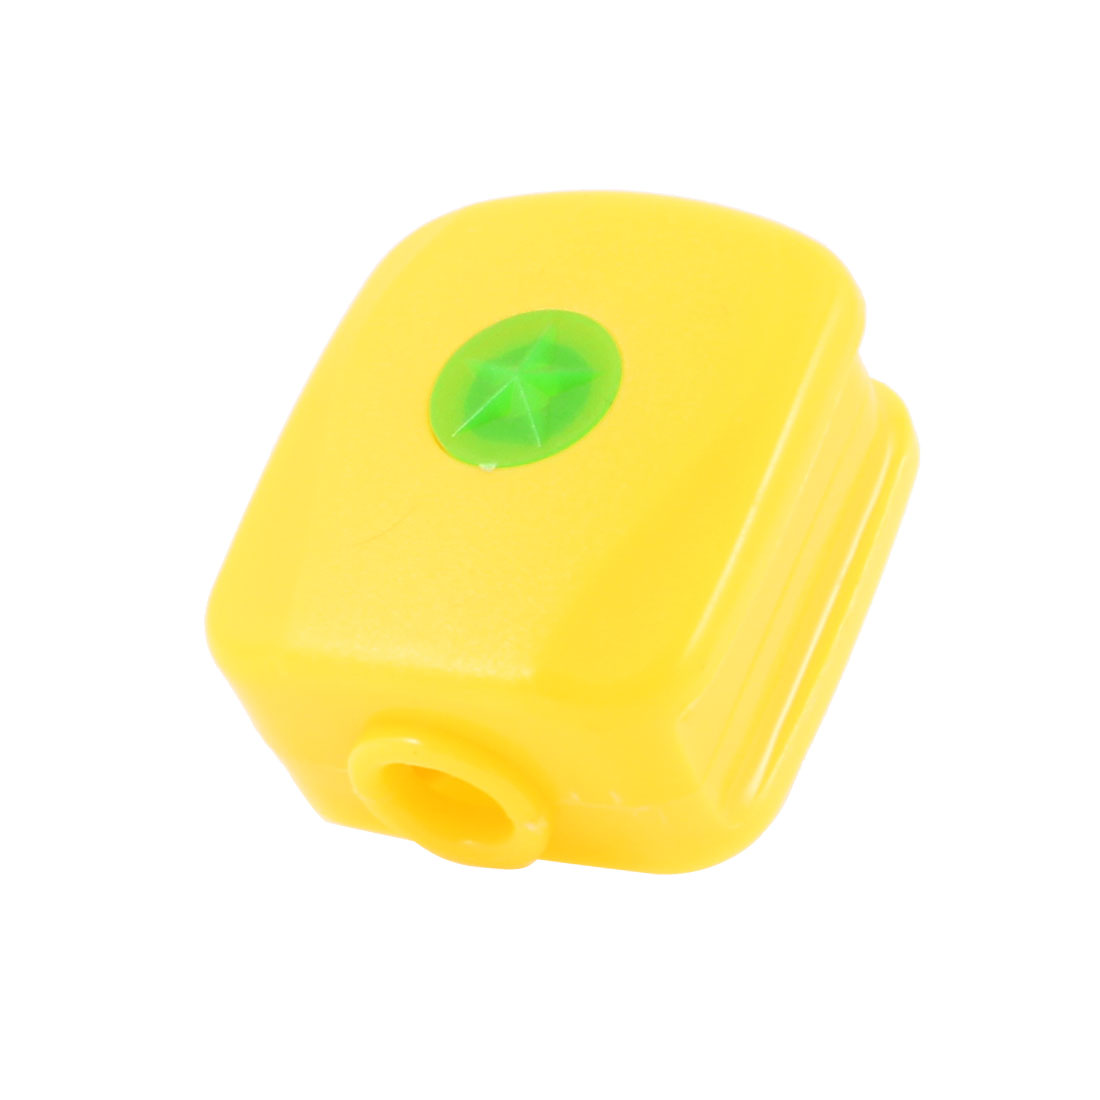 Factory Boiler 3 Flat Pin AU Power Plug Adapter AC 250V 10A-16A Yellow